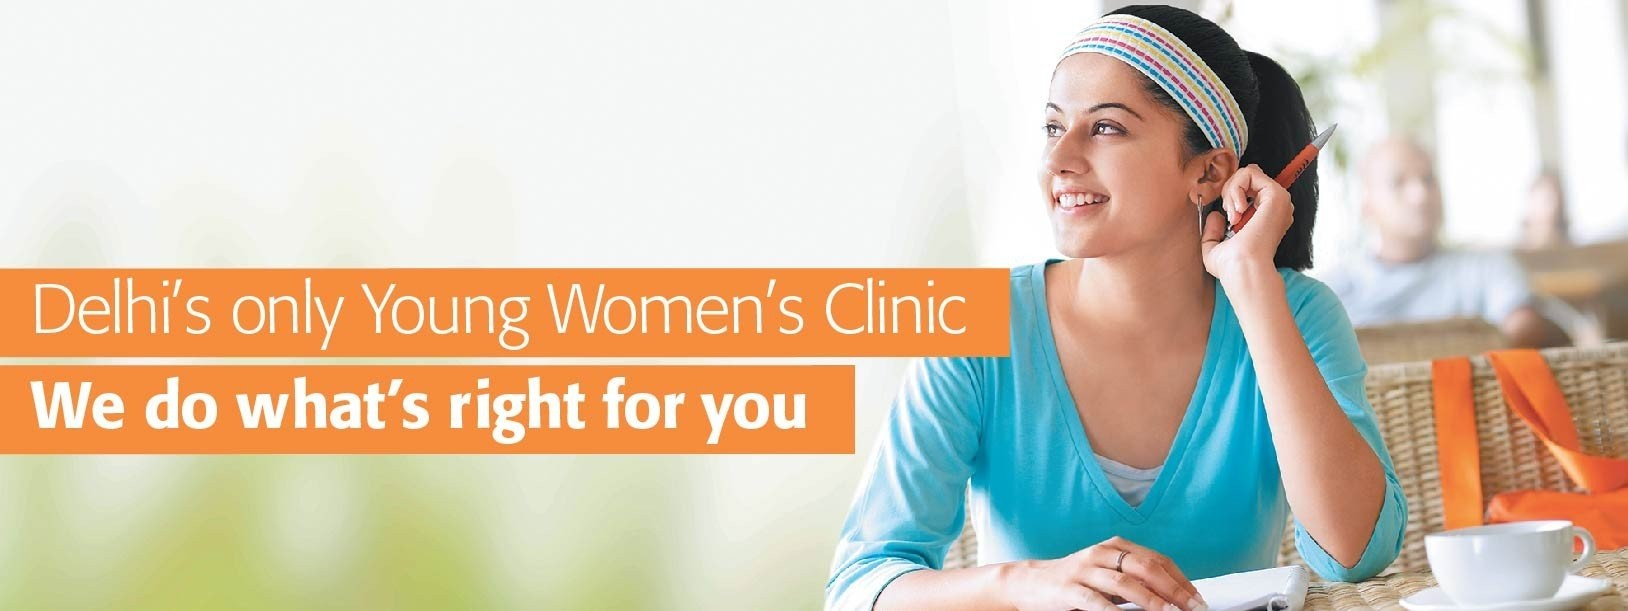 Delhi's only young women's clinic. We do what's right for you